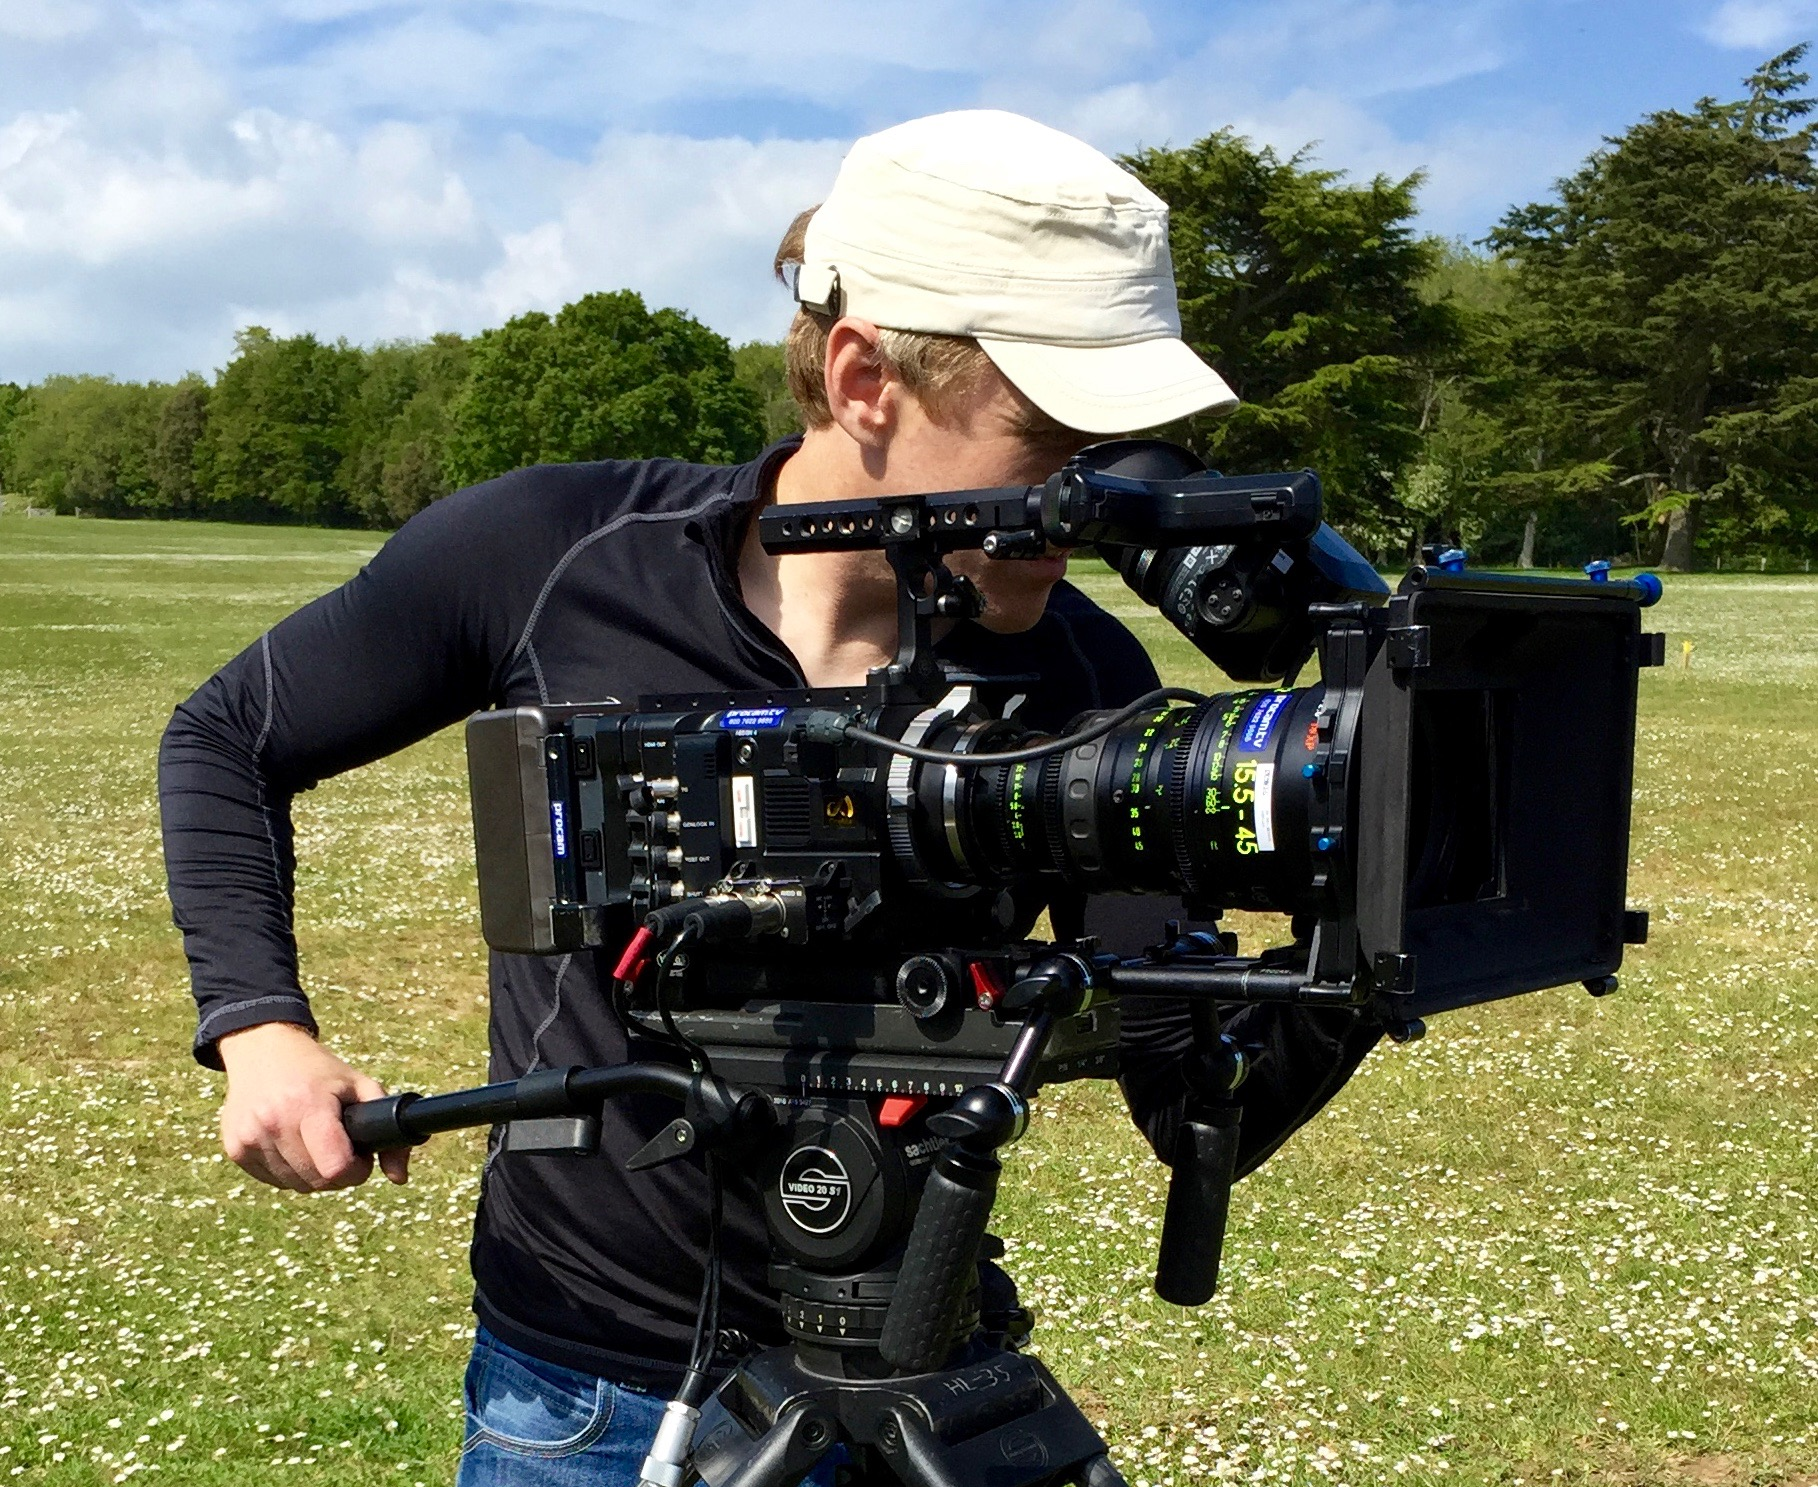 Filming on the F55 at Goodwood